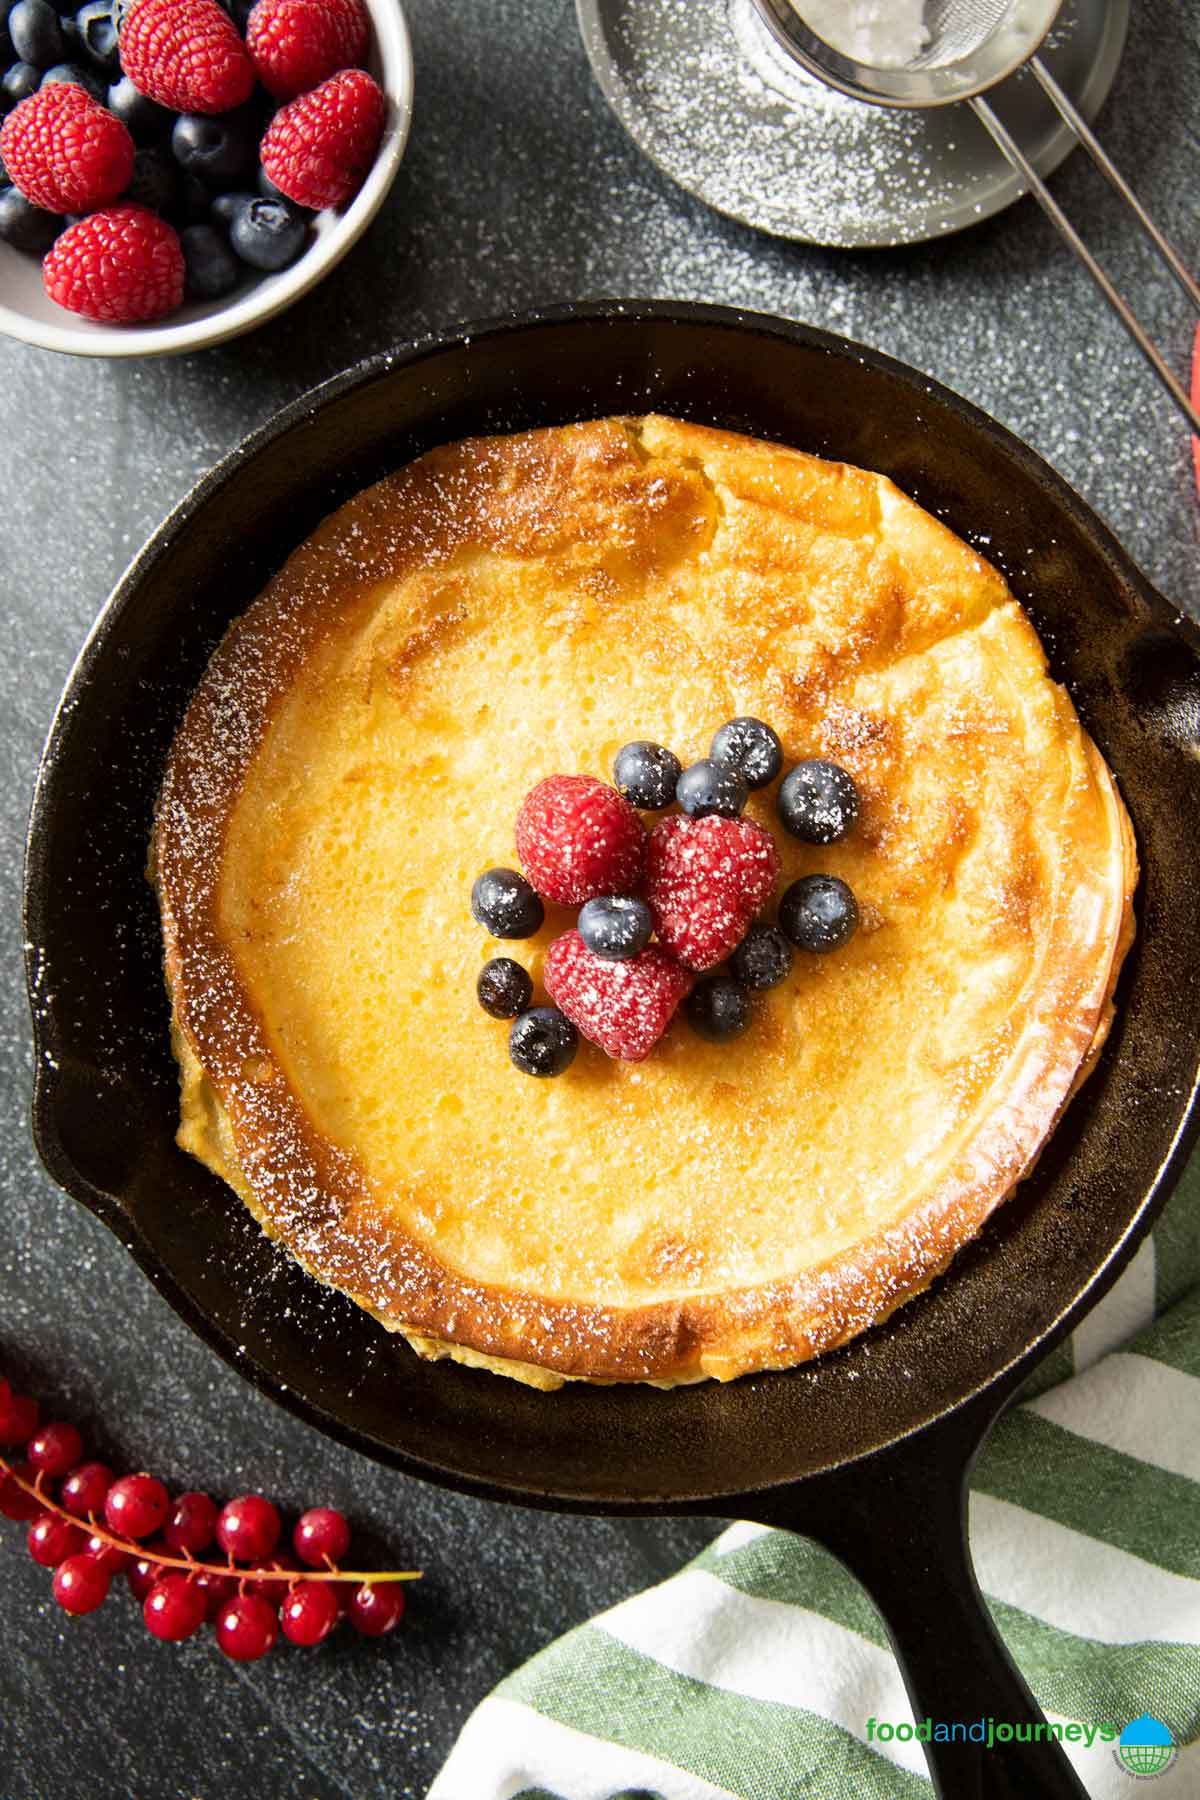 An overhead shot of Finnish Oven-Baked Pancake, straight out of the oven, sprinkled with powdered sugar and served with fresh berries.